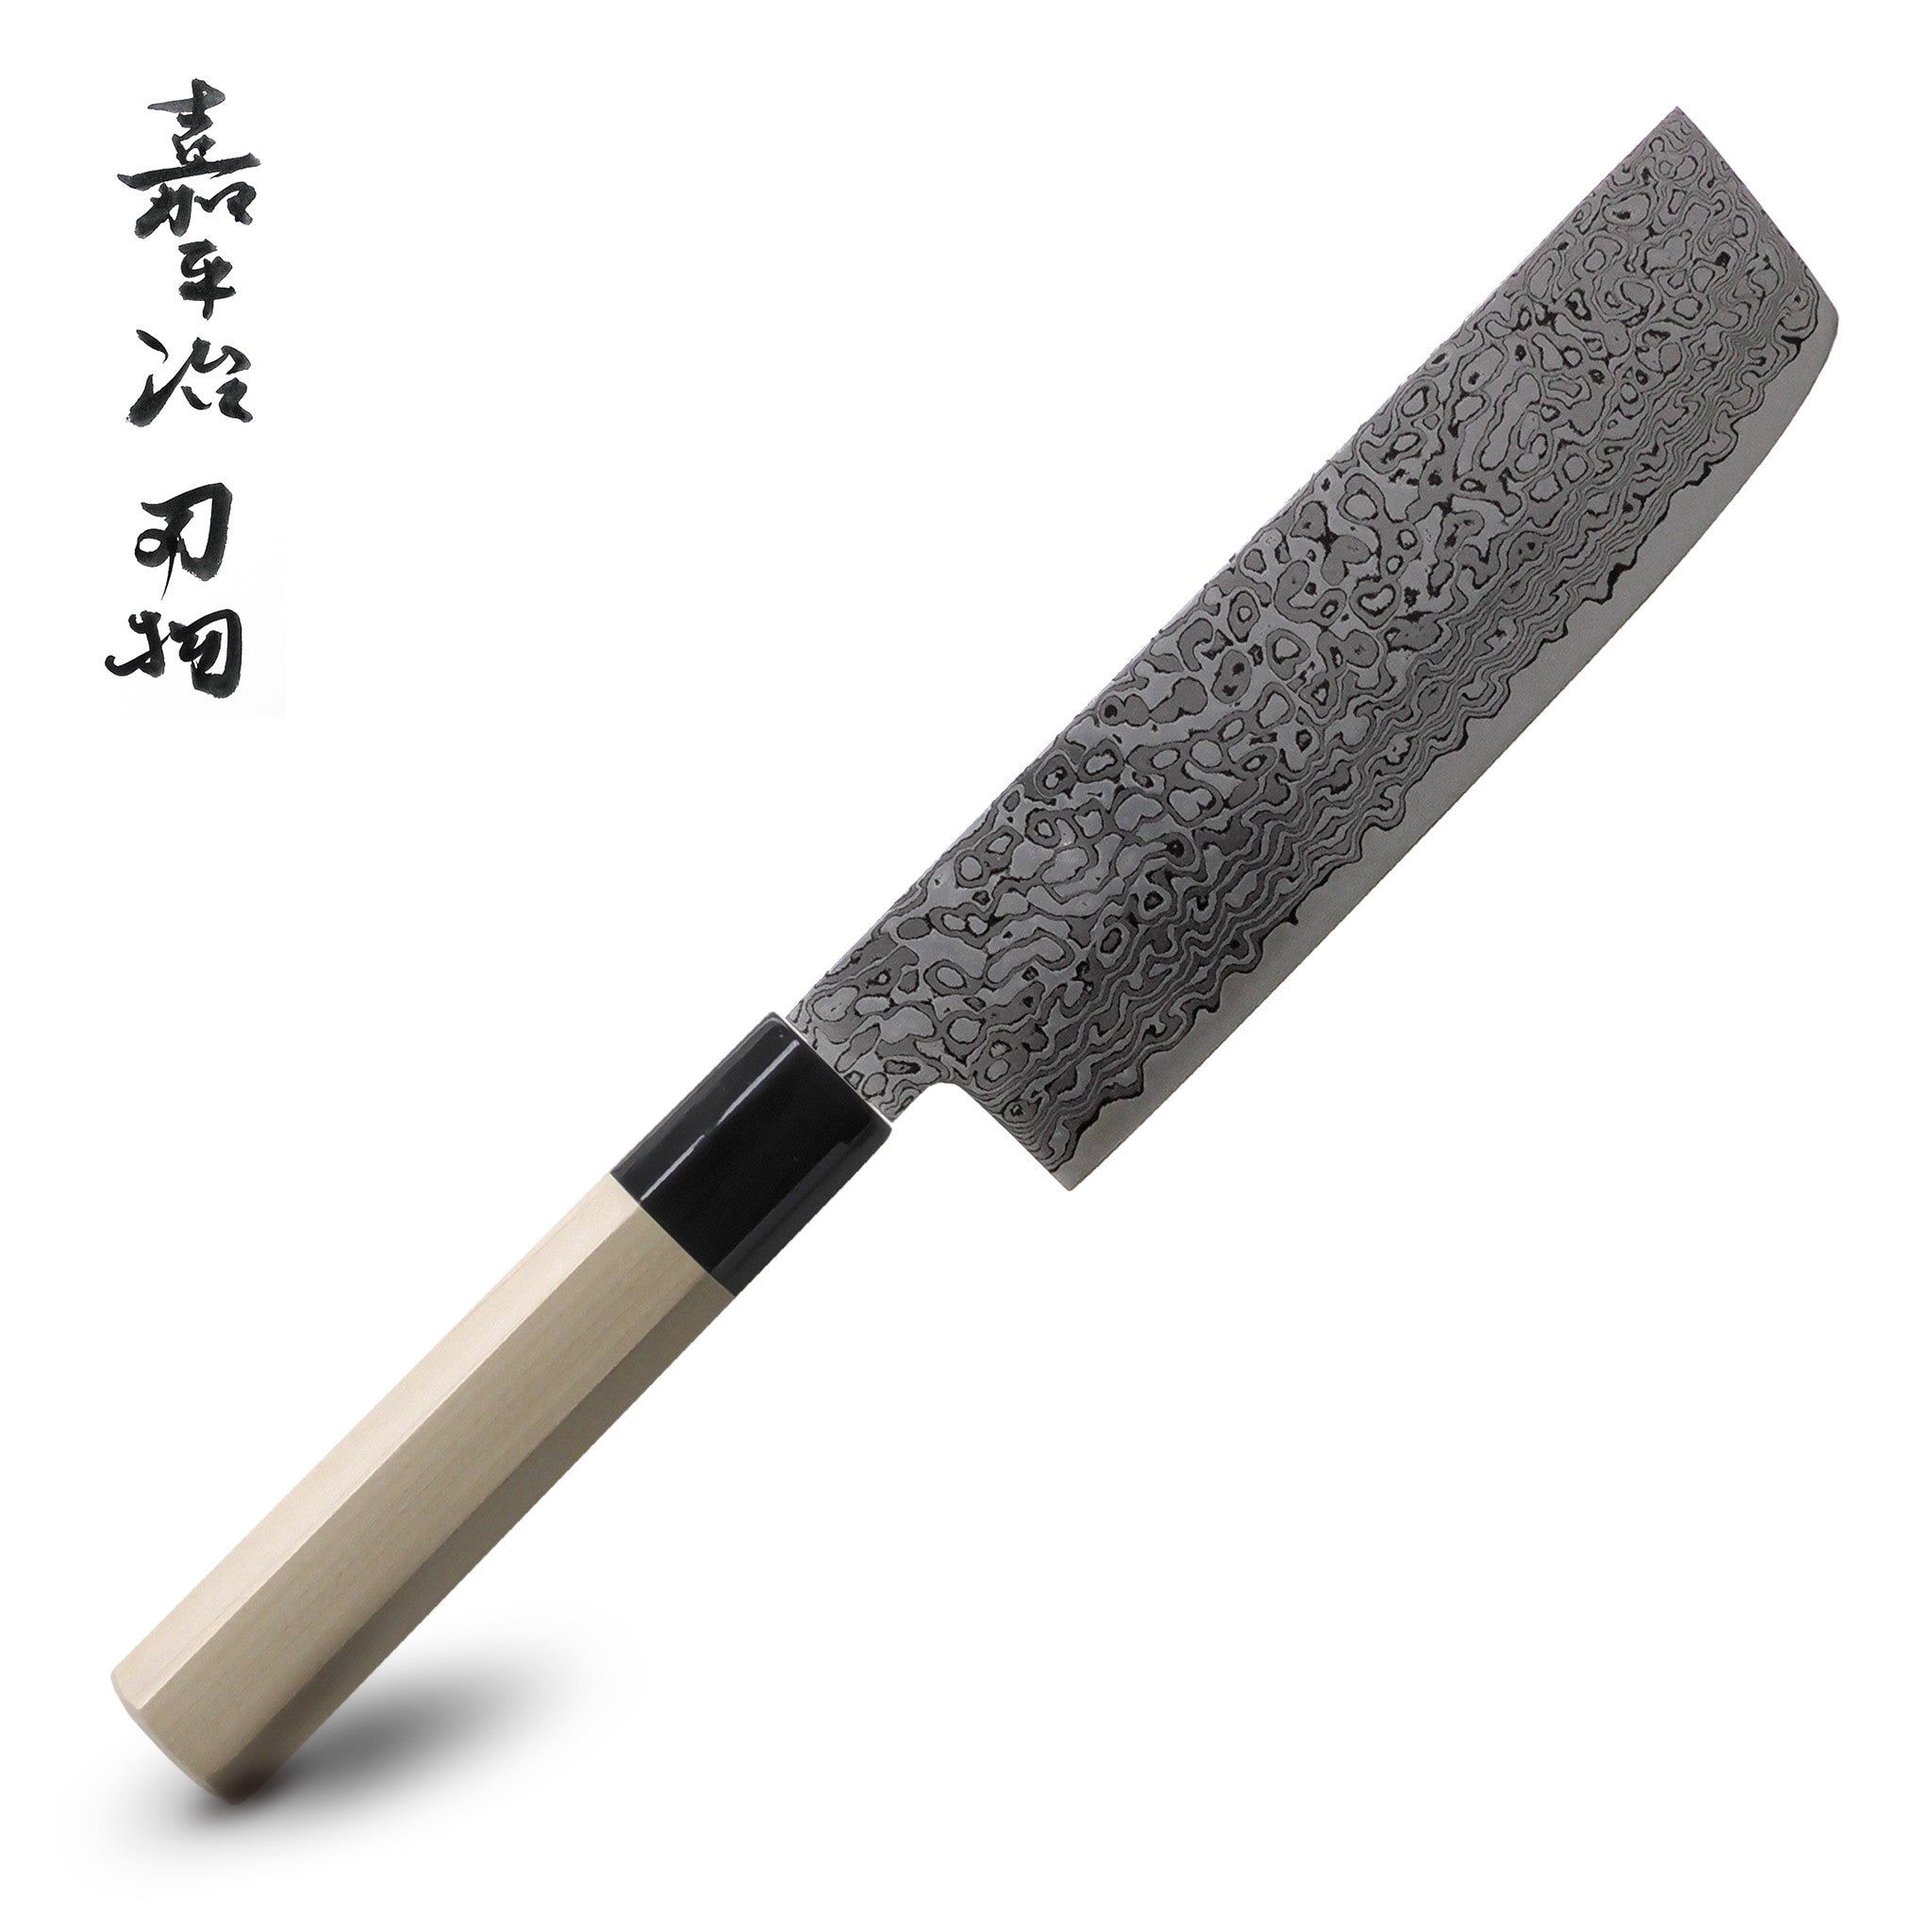 Tekken Yoshimasa ZA18 BOC Damascus 69 Layer Usuba Japanese Knife